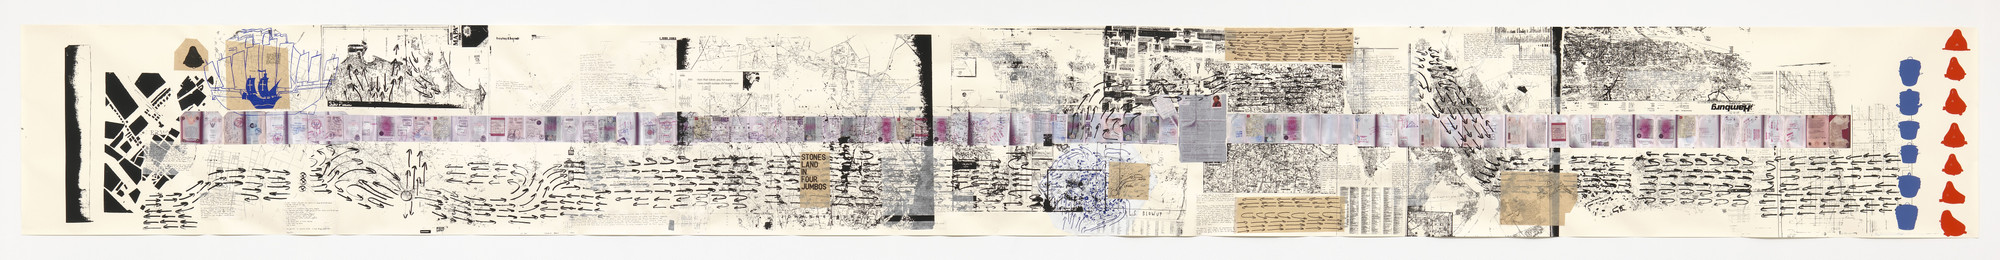 Rirkrit Tiravanija. Untitled 2008-2011 (the map of the land of feeling) I. 2008-11